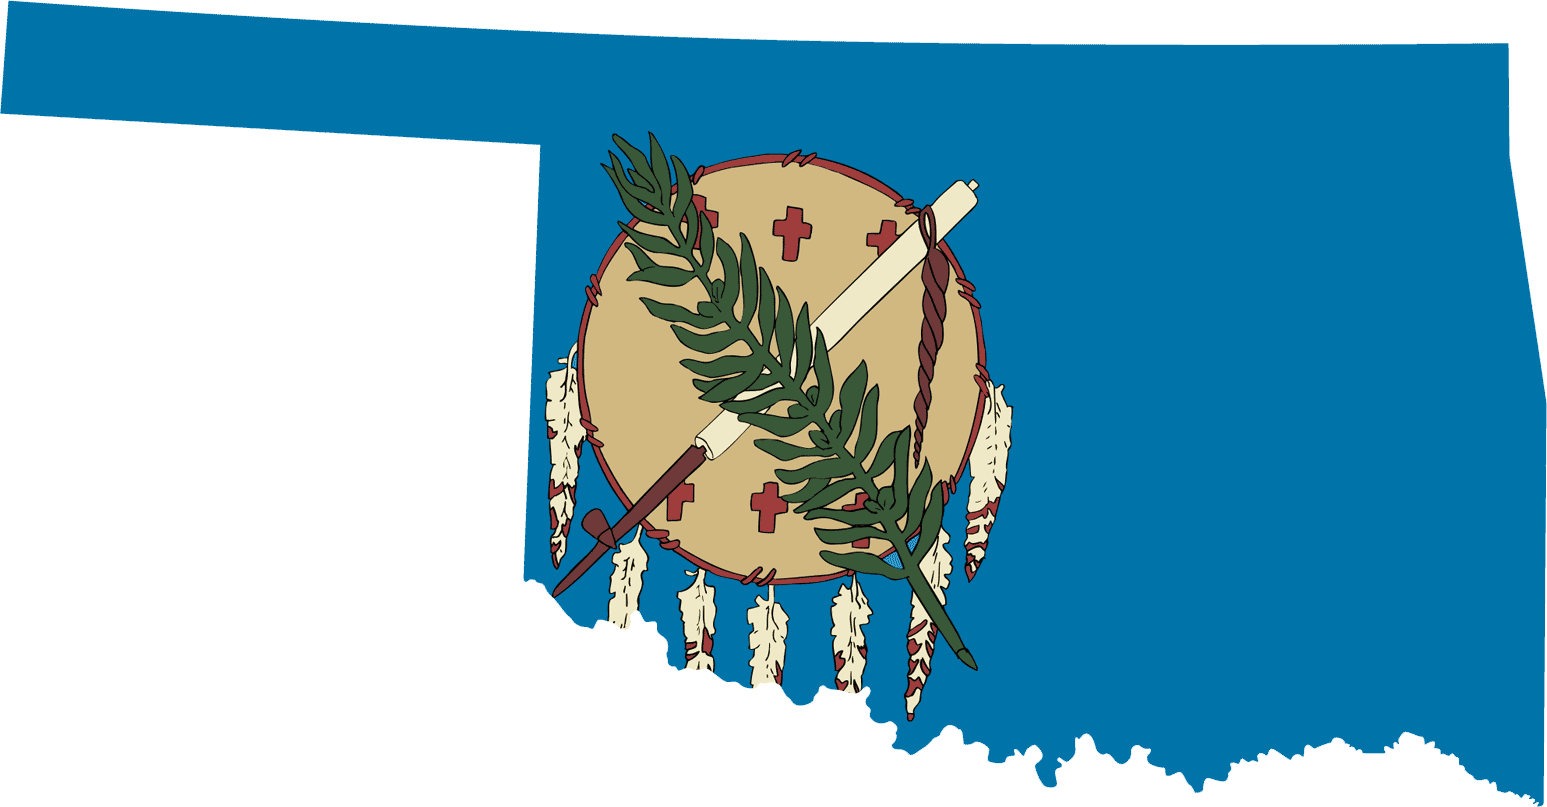 Oklahoma flag clipart clip art royalty free download Oklahoma Flag Map • Mapsof.net clip art royalty free download